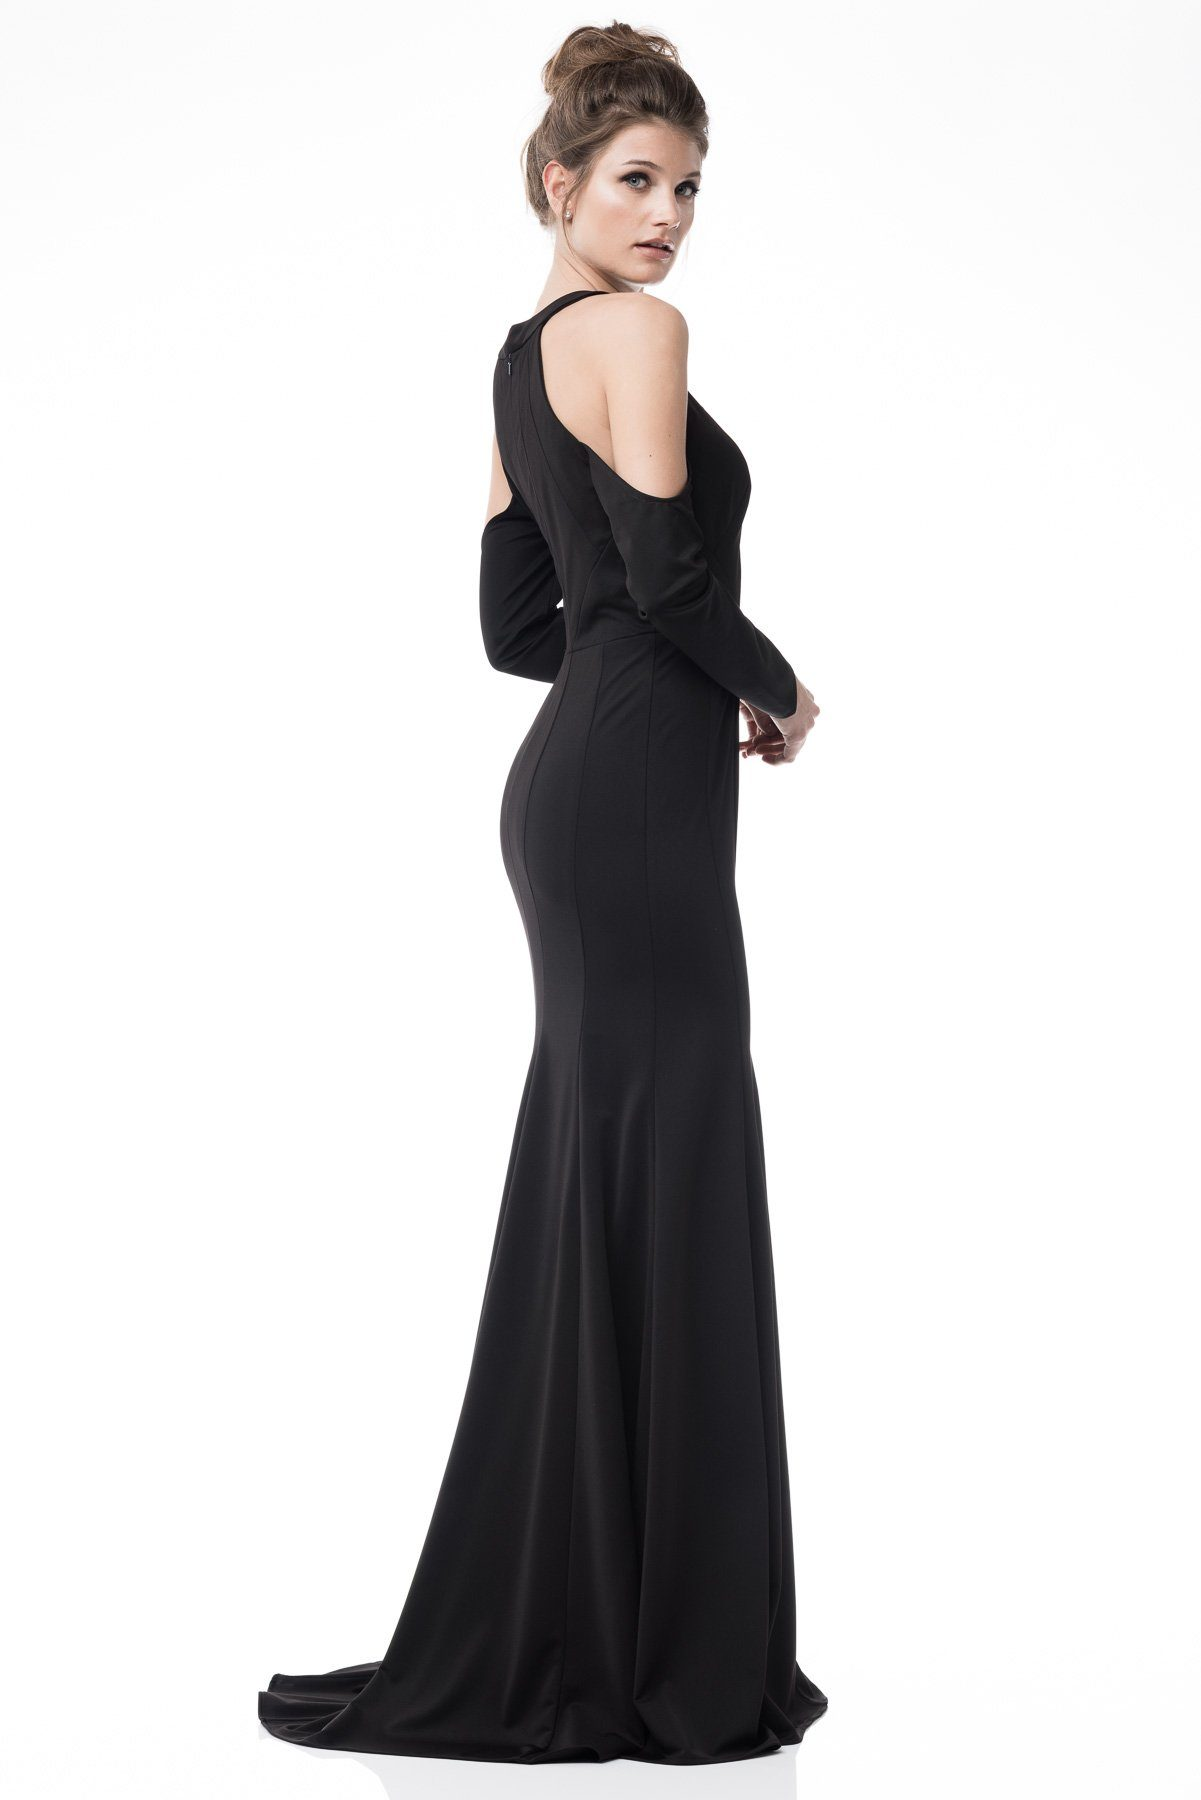 Black formal dress with sleeves BC#CP61363 – Simply Fab Dress